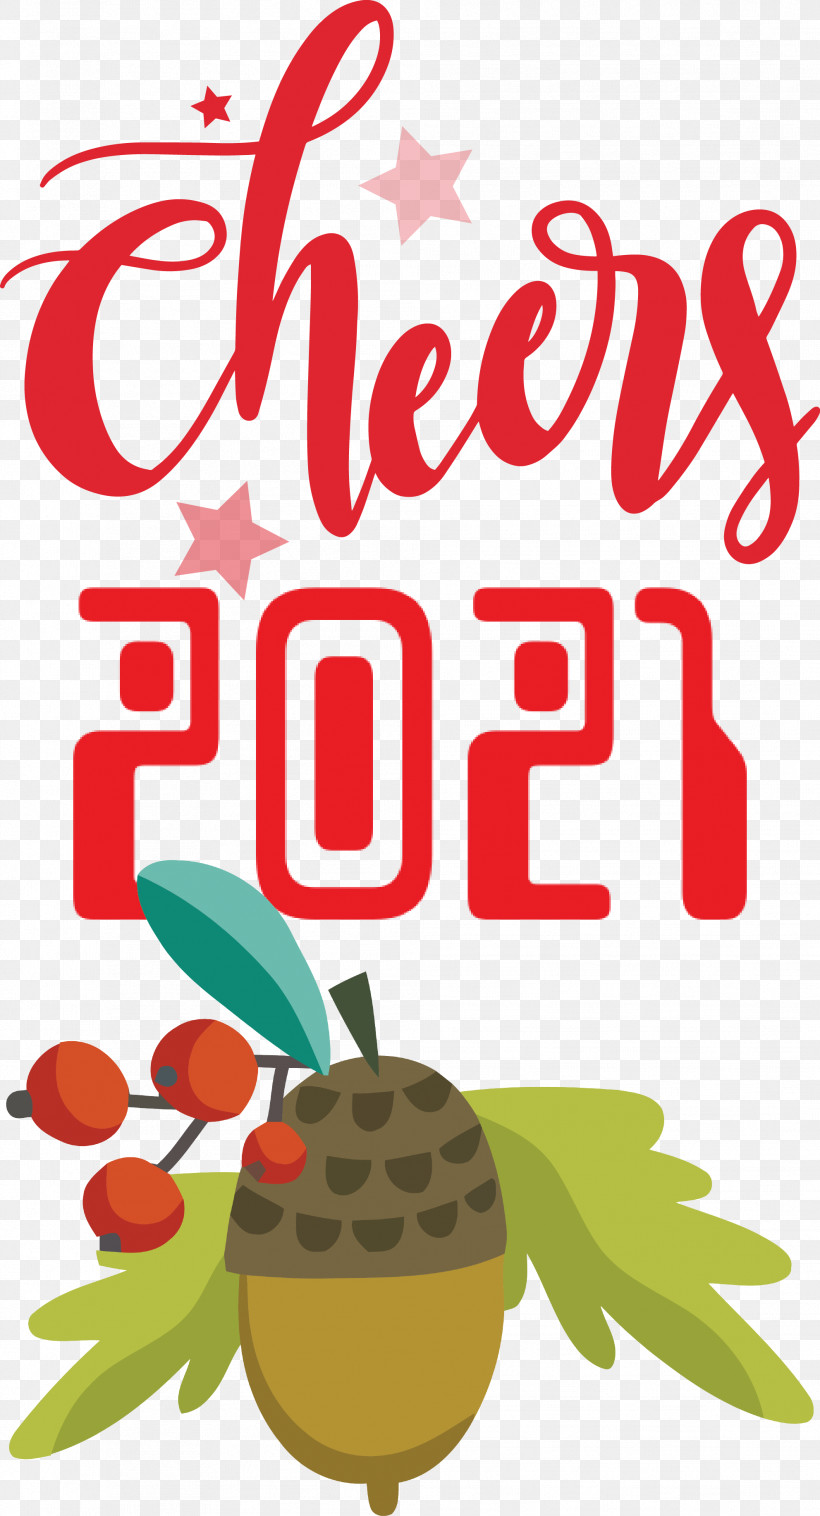 Cheers 2021 New Year Cheers.2021 New Year, PNG, 1983x3668px, 2021 Happy New Year, Cheers 2021 New Year, Day Party, Frame, Logo Download Free